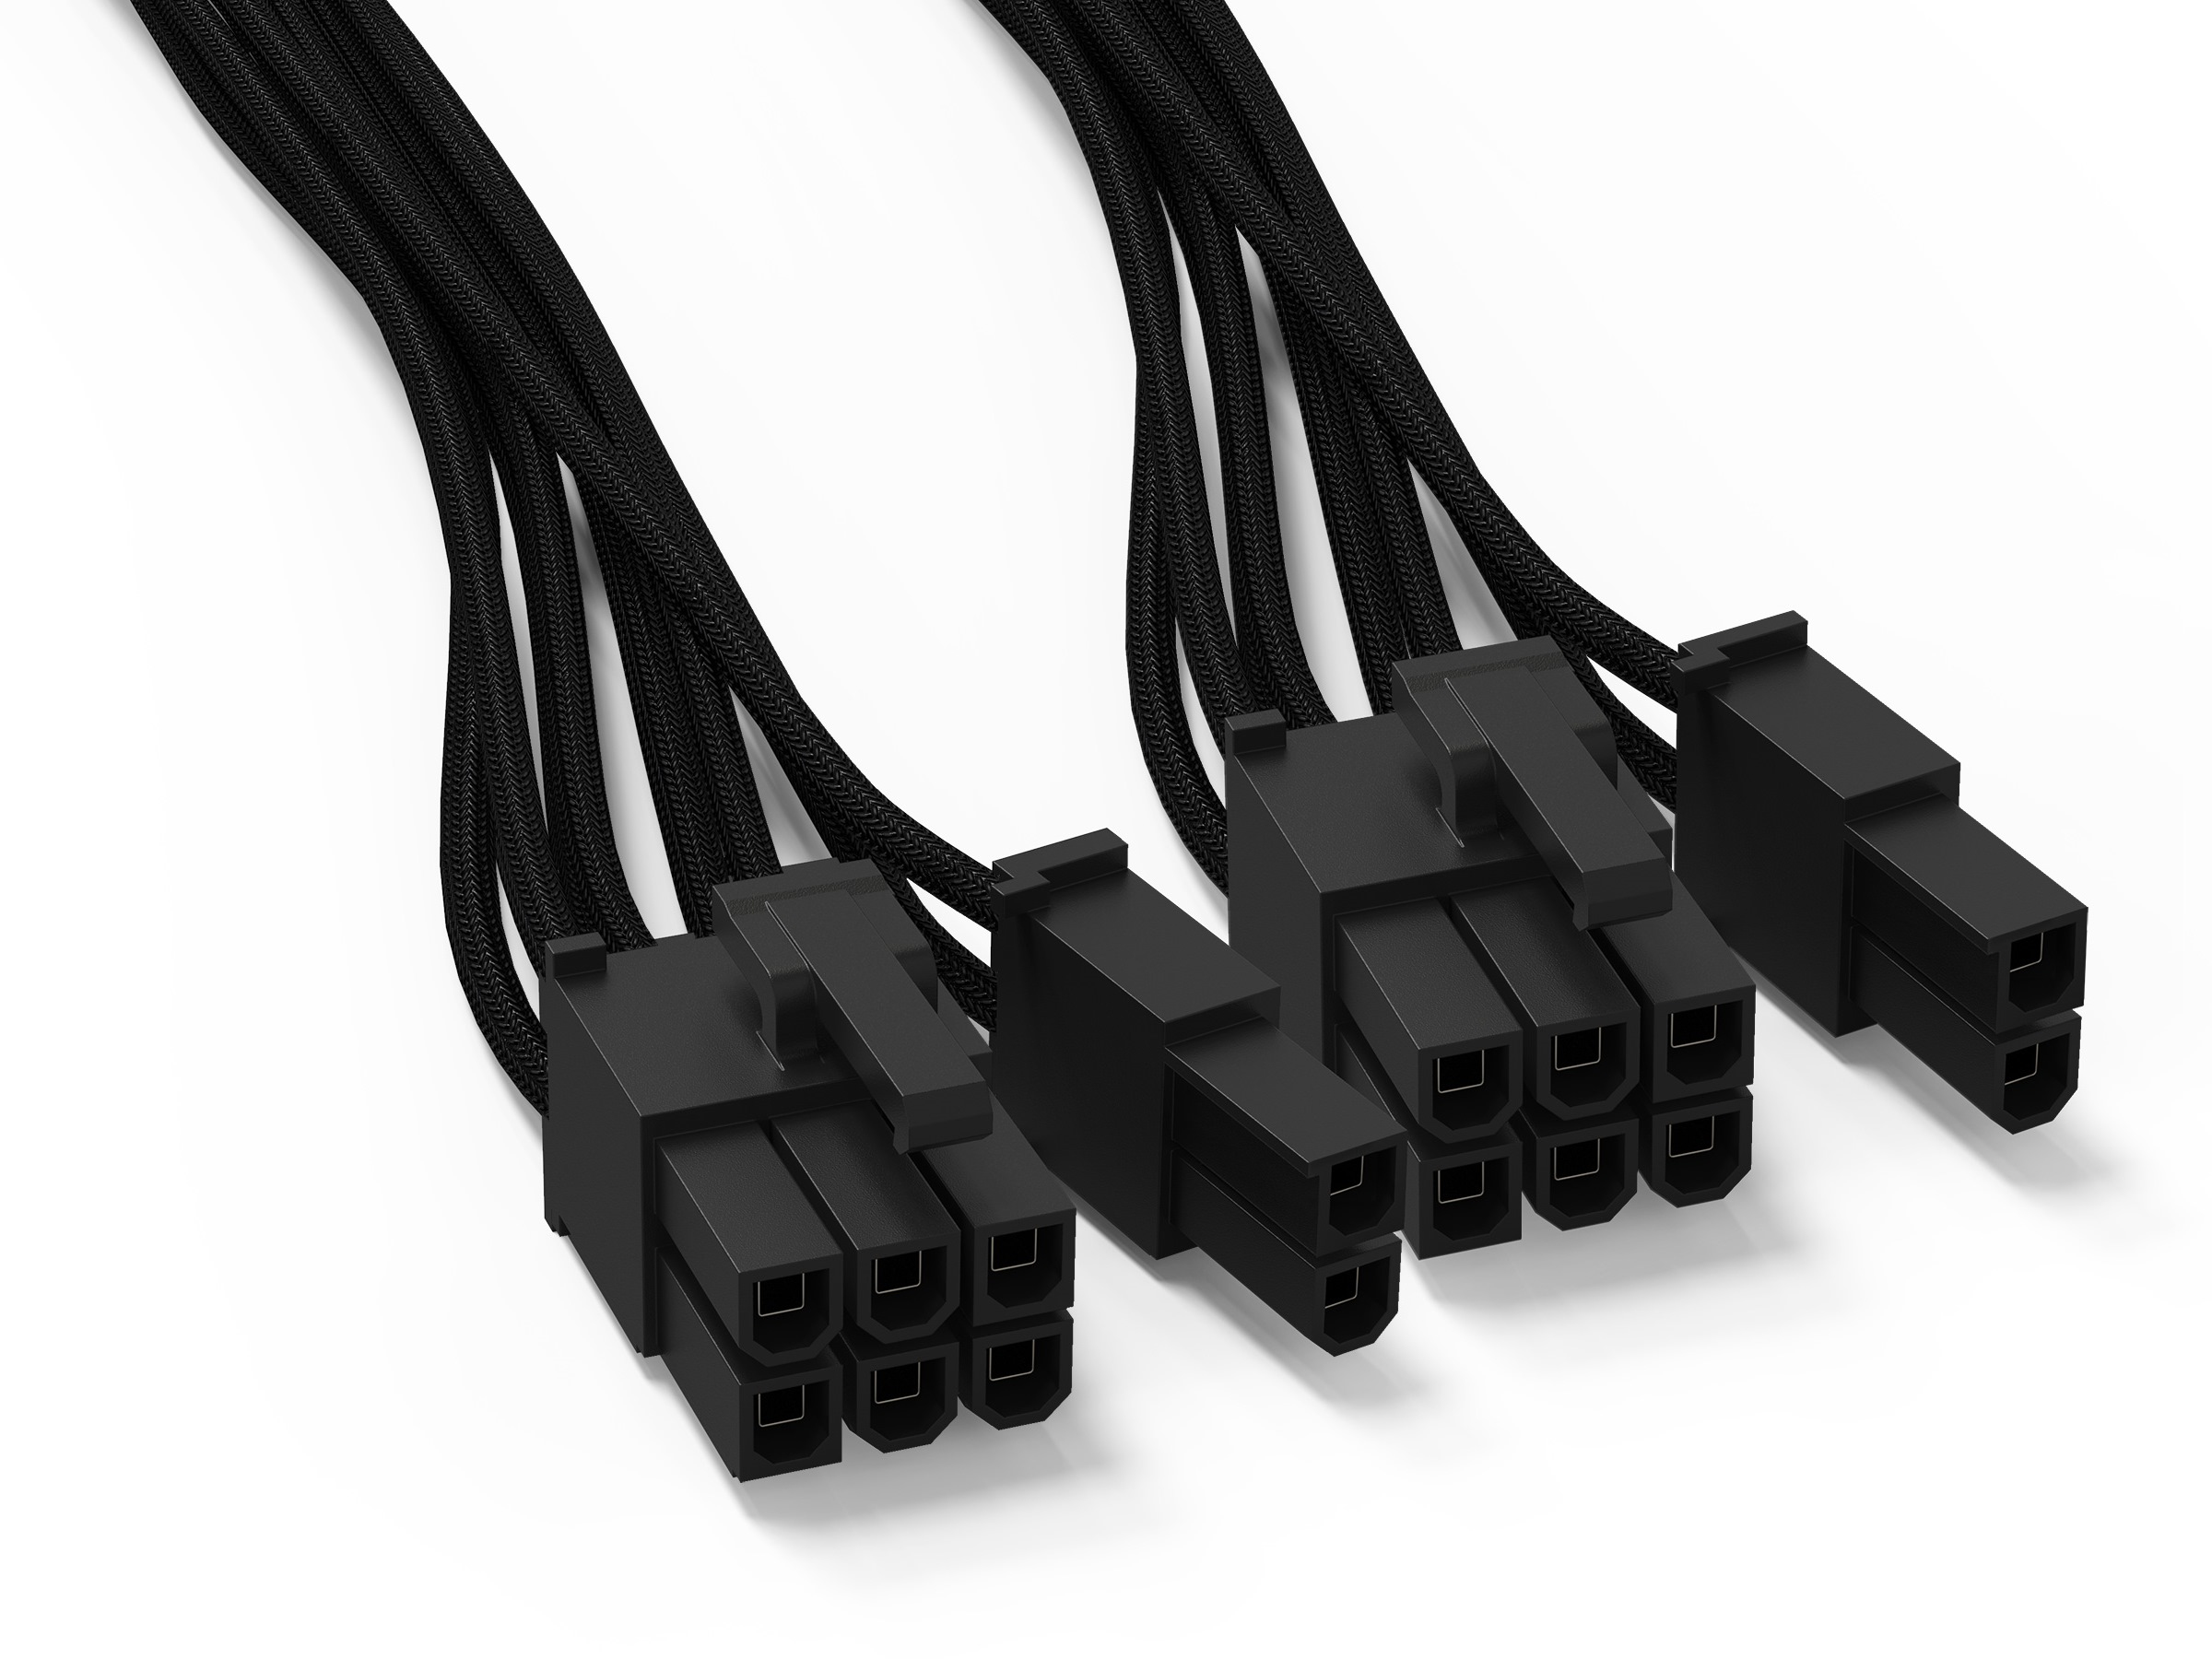 be quiet! PCI-E Power Cable CP-6620 //